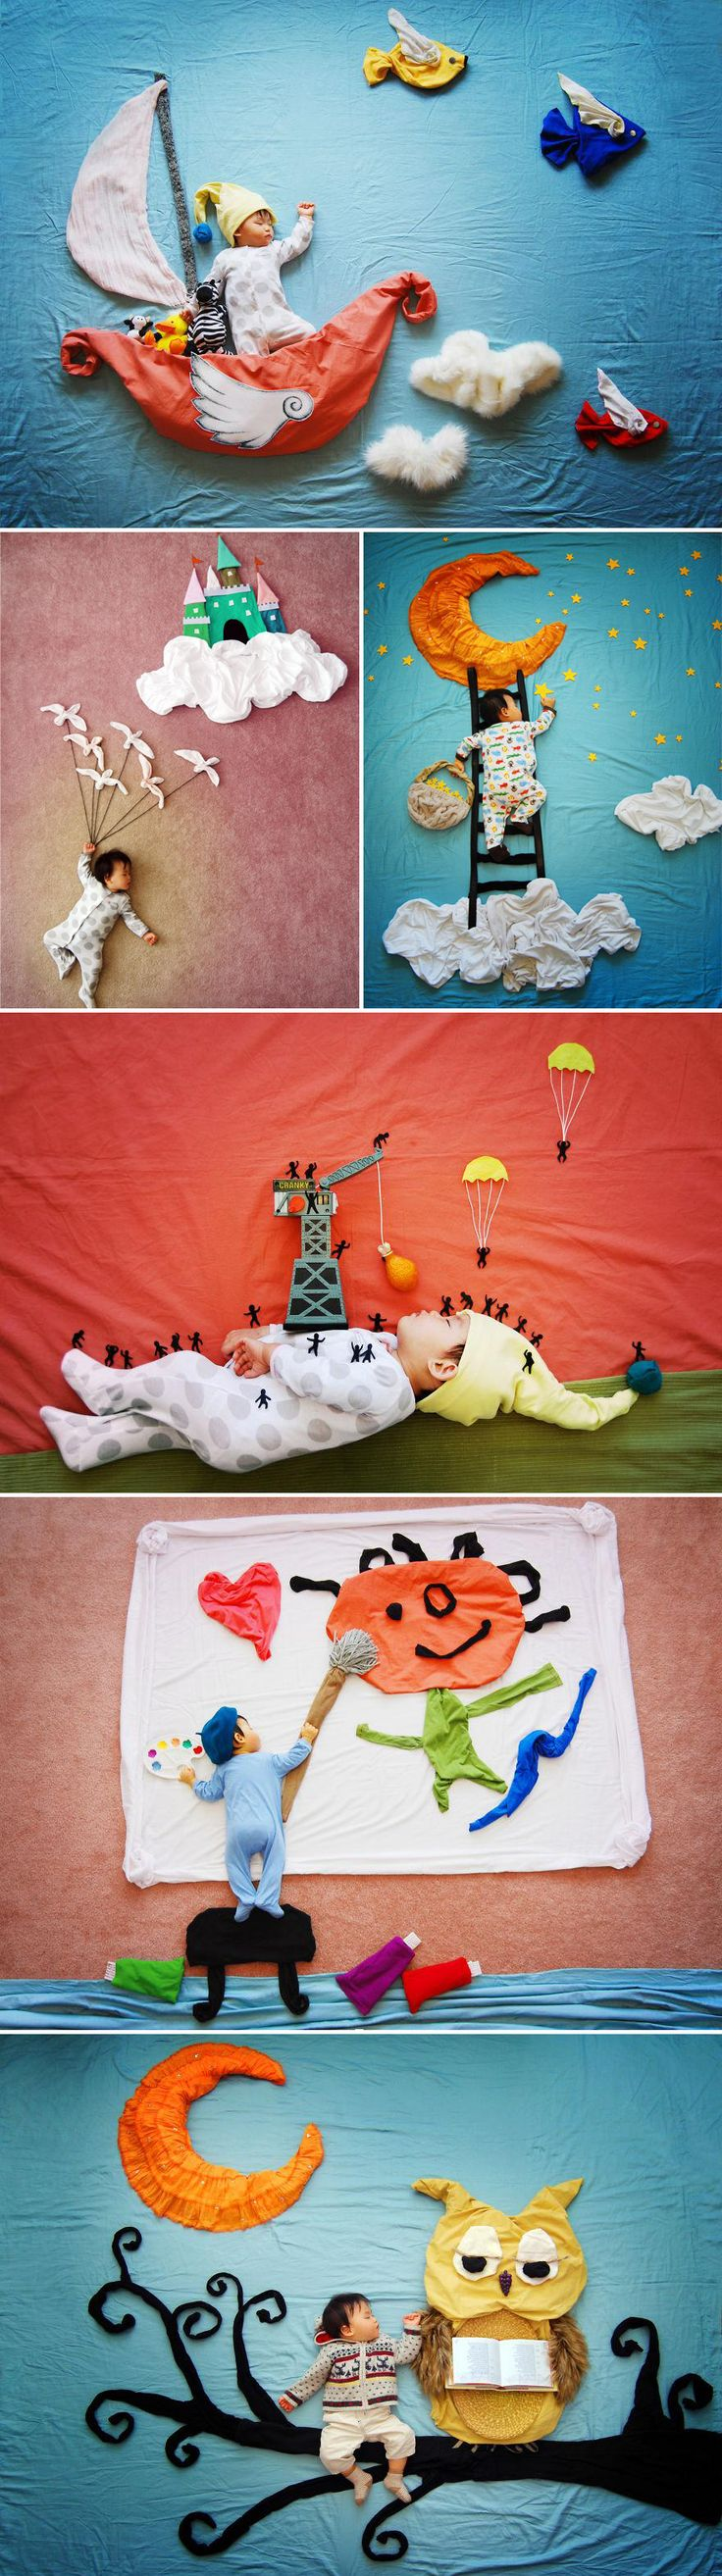 Creative Mom Turns Her Baby's Naptime Into Dream Adventures  http://www.boredpanda.org/wengenn-in-wonderland-sioin-queenie-liao/